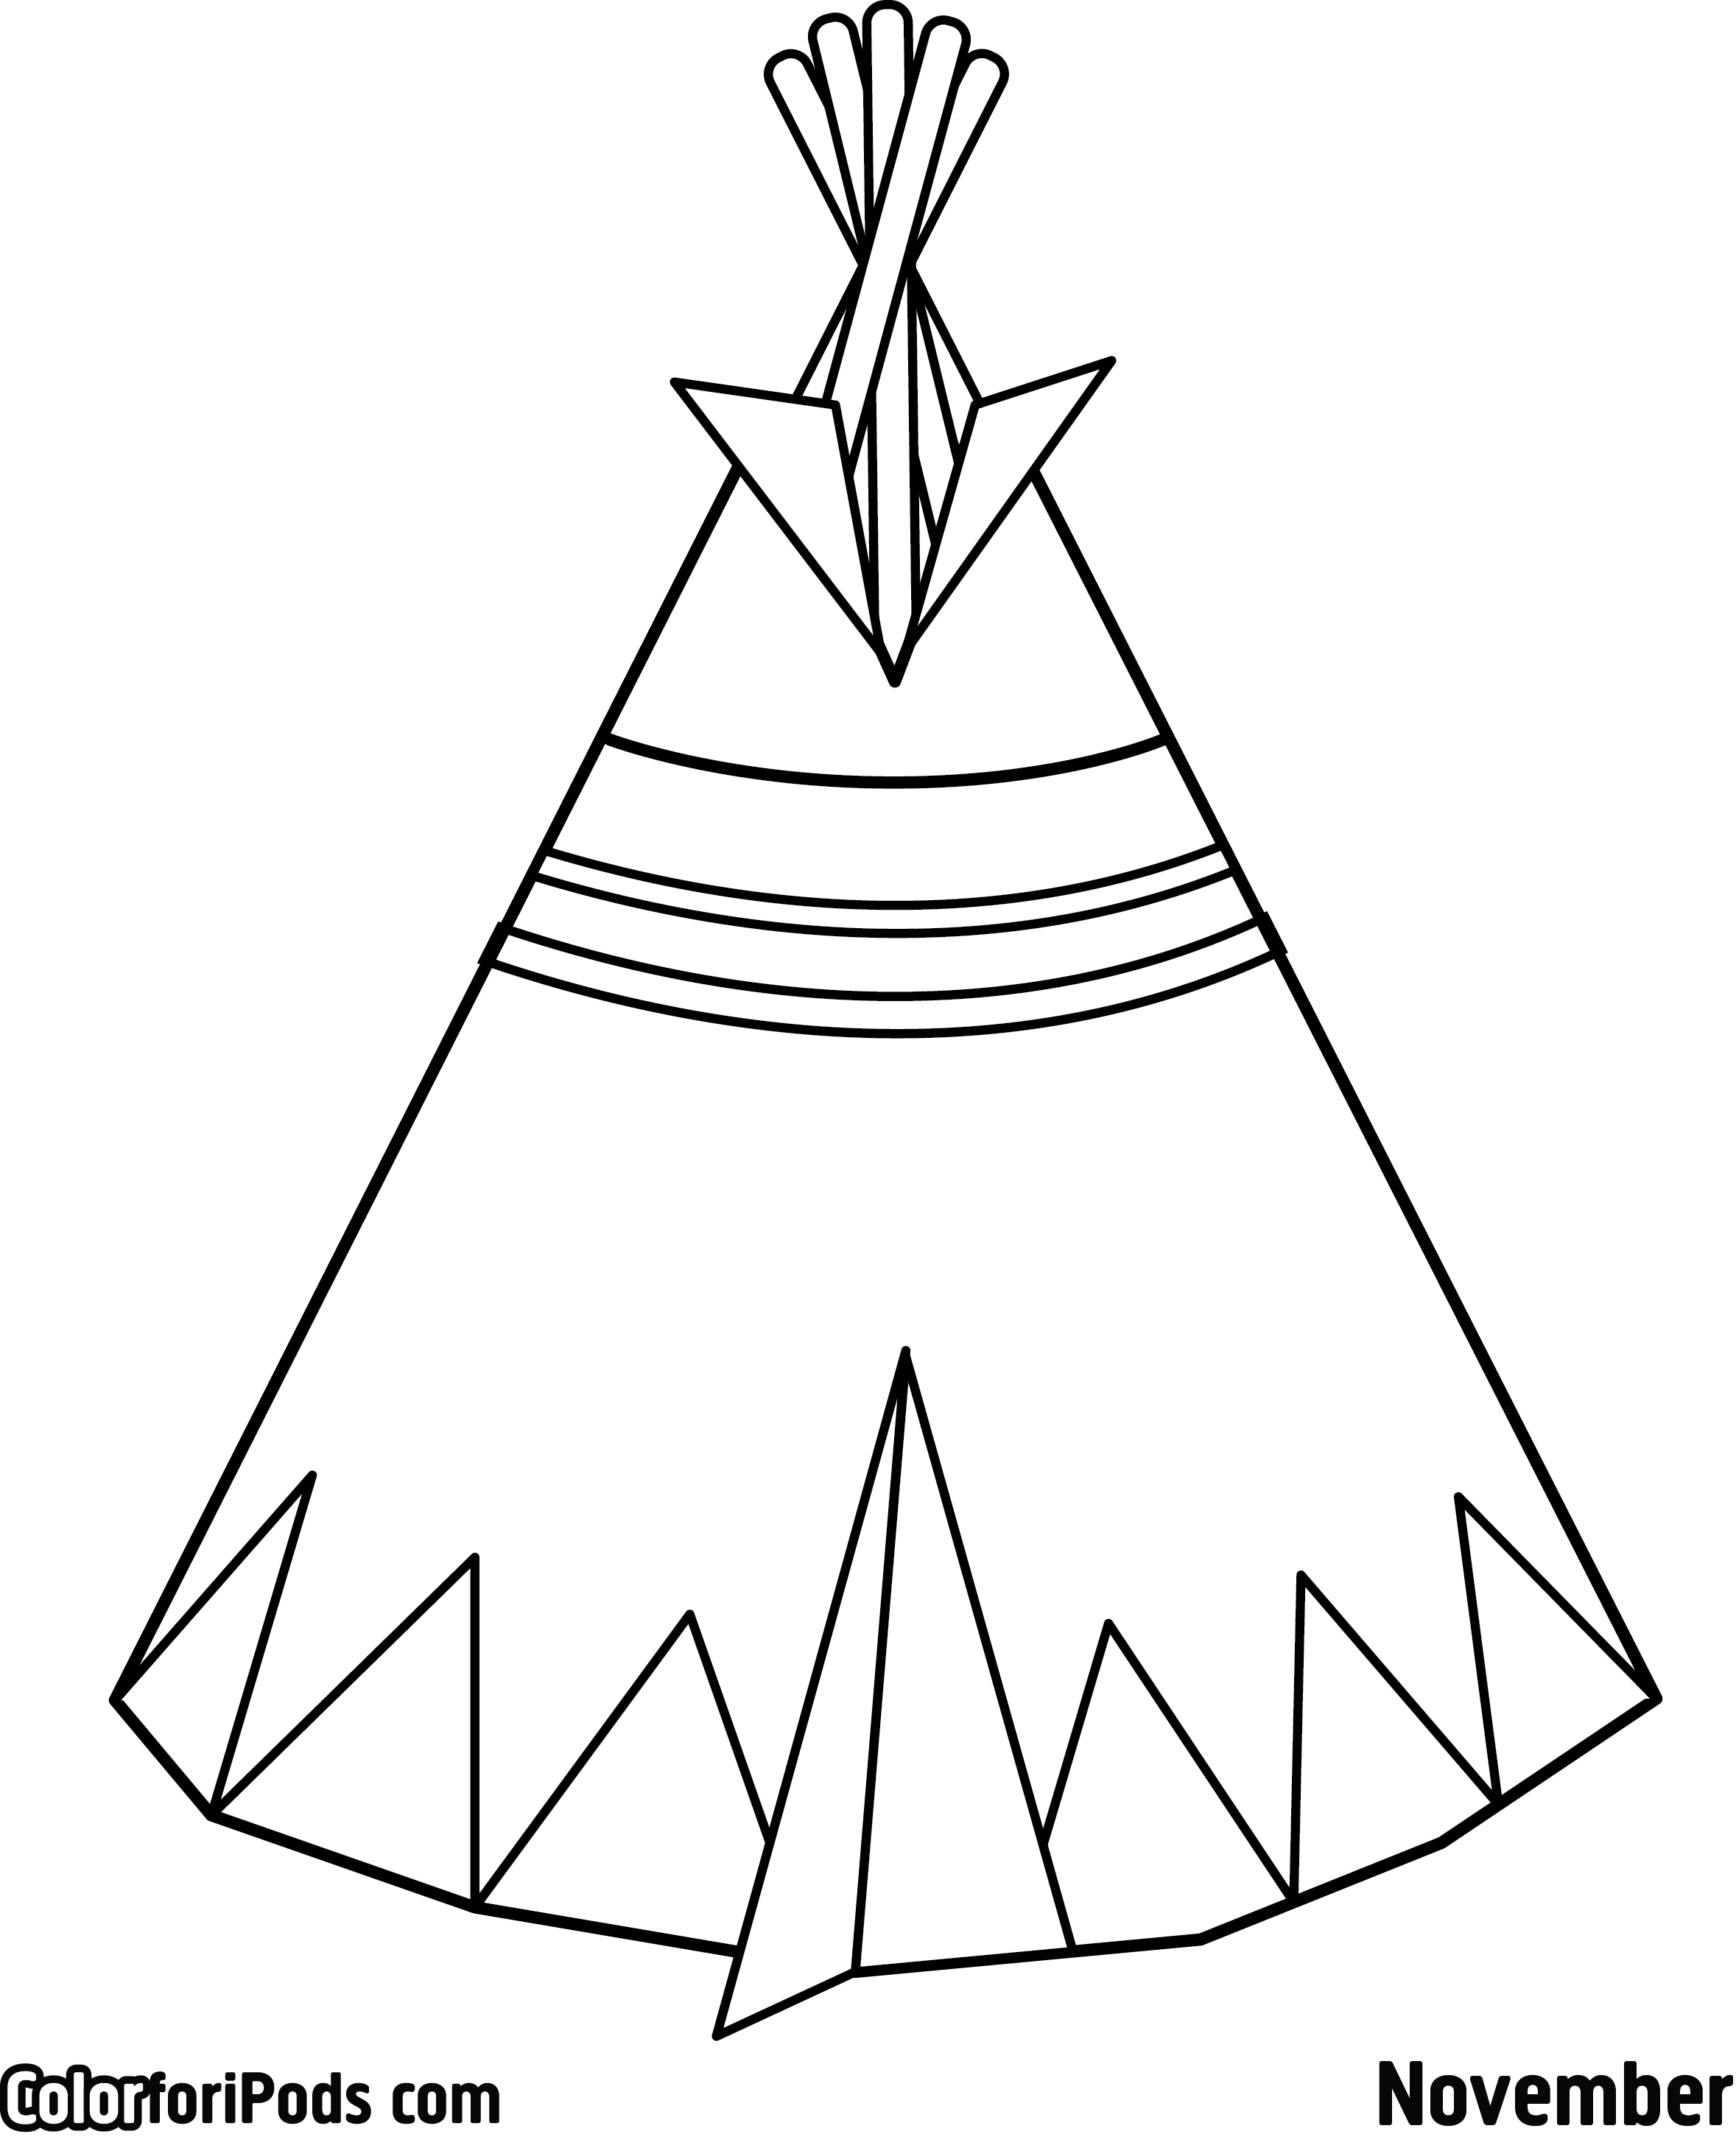 Tipi Drawing at GetDrawings.com | Free for personal use Tipi Drawing ...